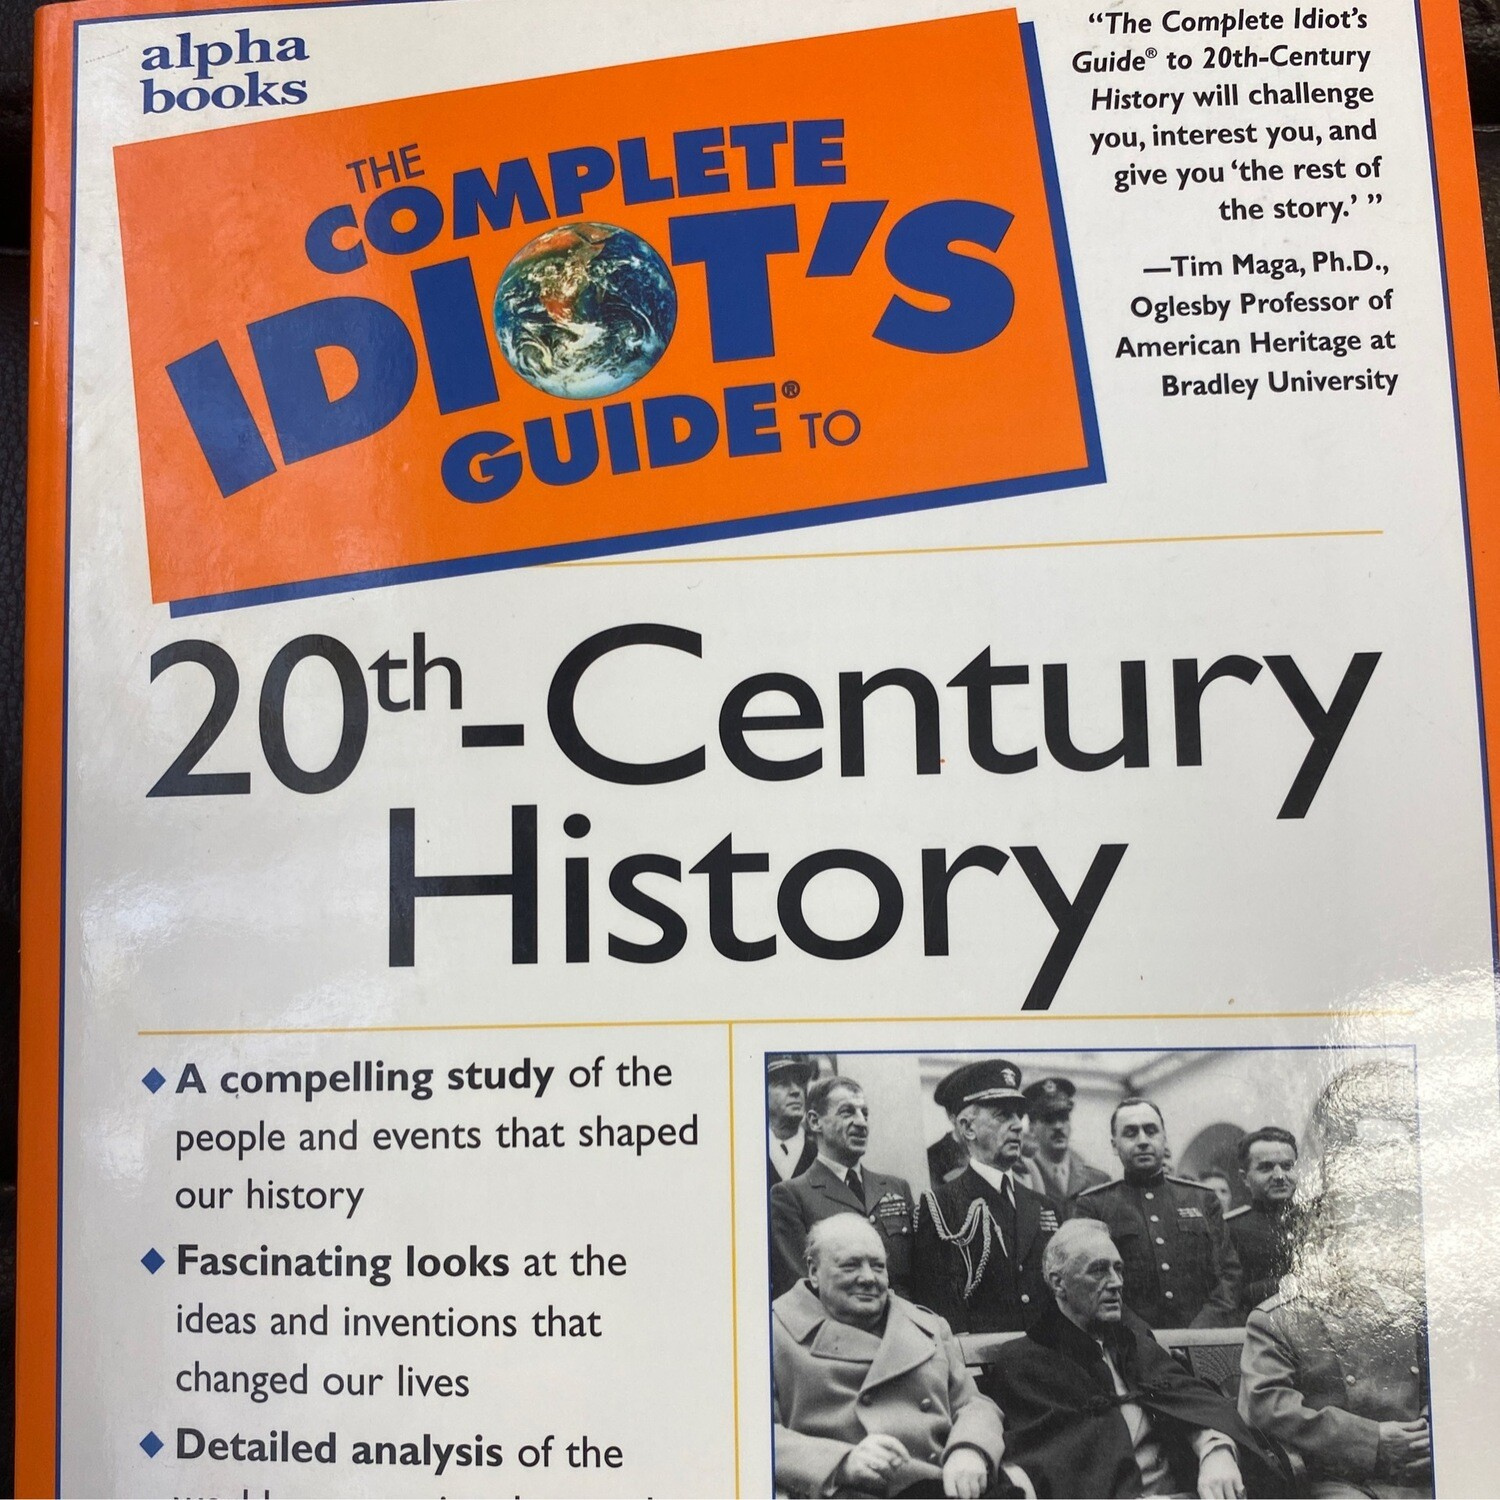 The Complete Idiot's Guide to 20th Century History